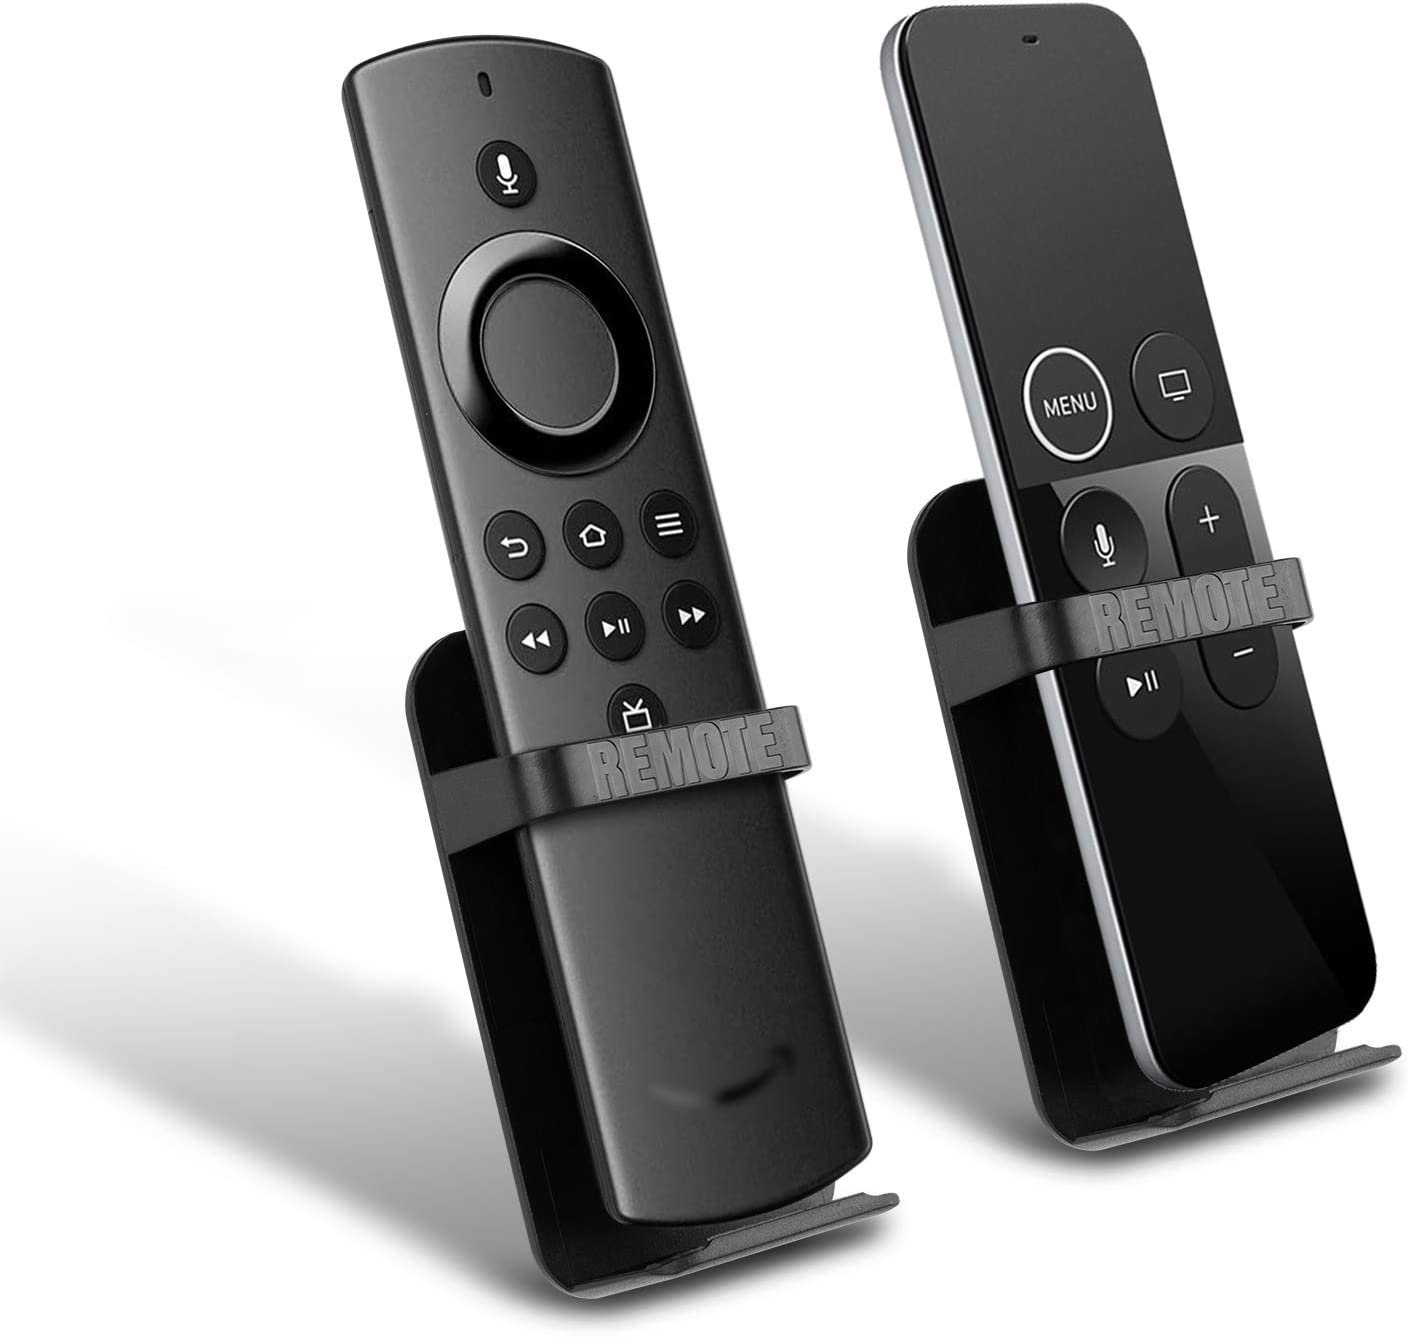 TV Remote Holder Replacement for Fir TV Stick Lite/TV Stick 4K / 1st and 2nd Gen TV Stick/TV Cube/Alexa Dot Voice/Apple TV/Siri Remote Small for Bed 2-Pack